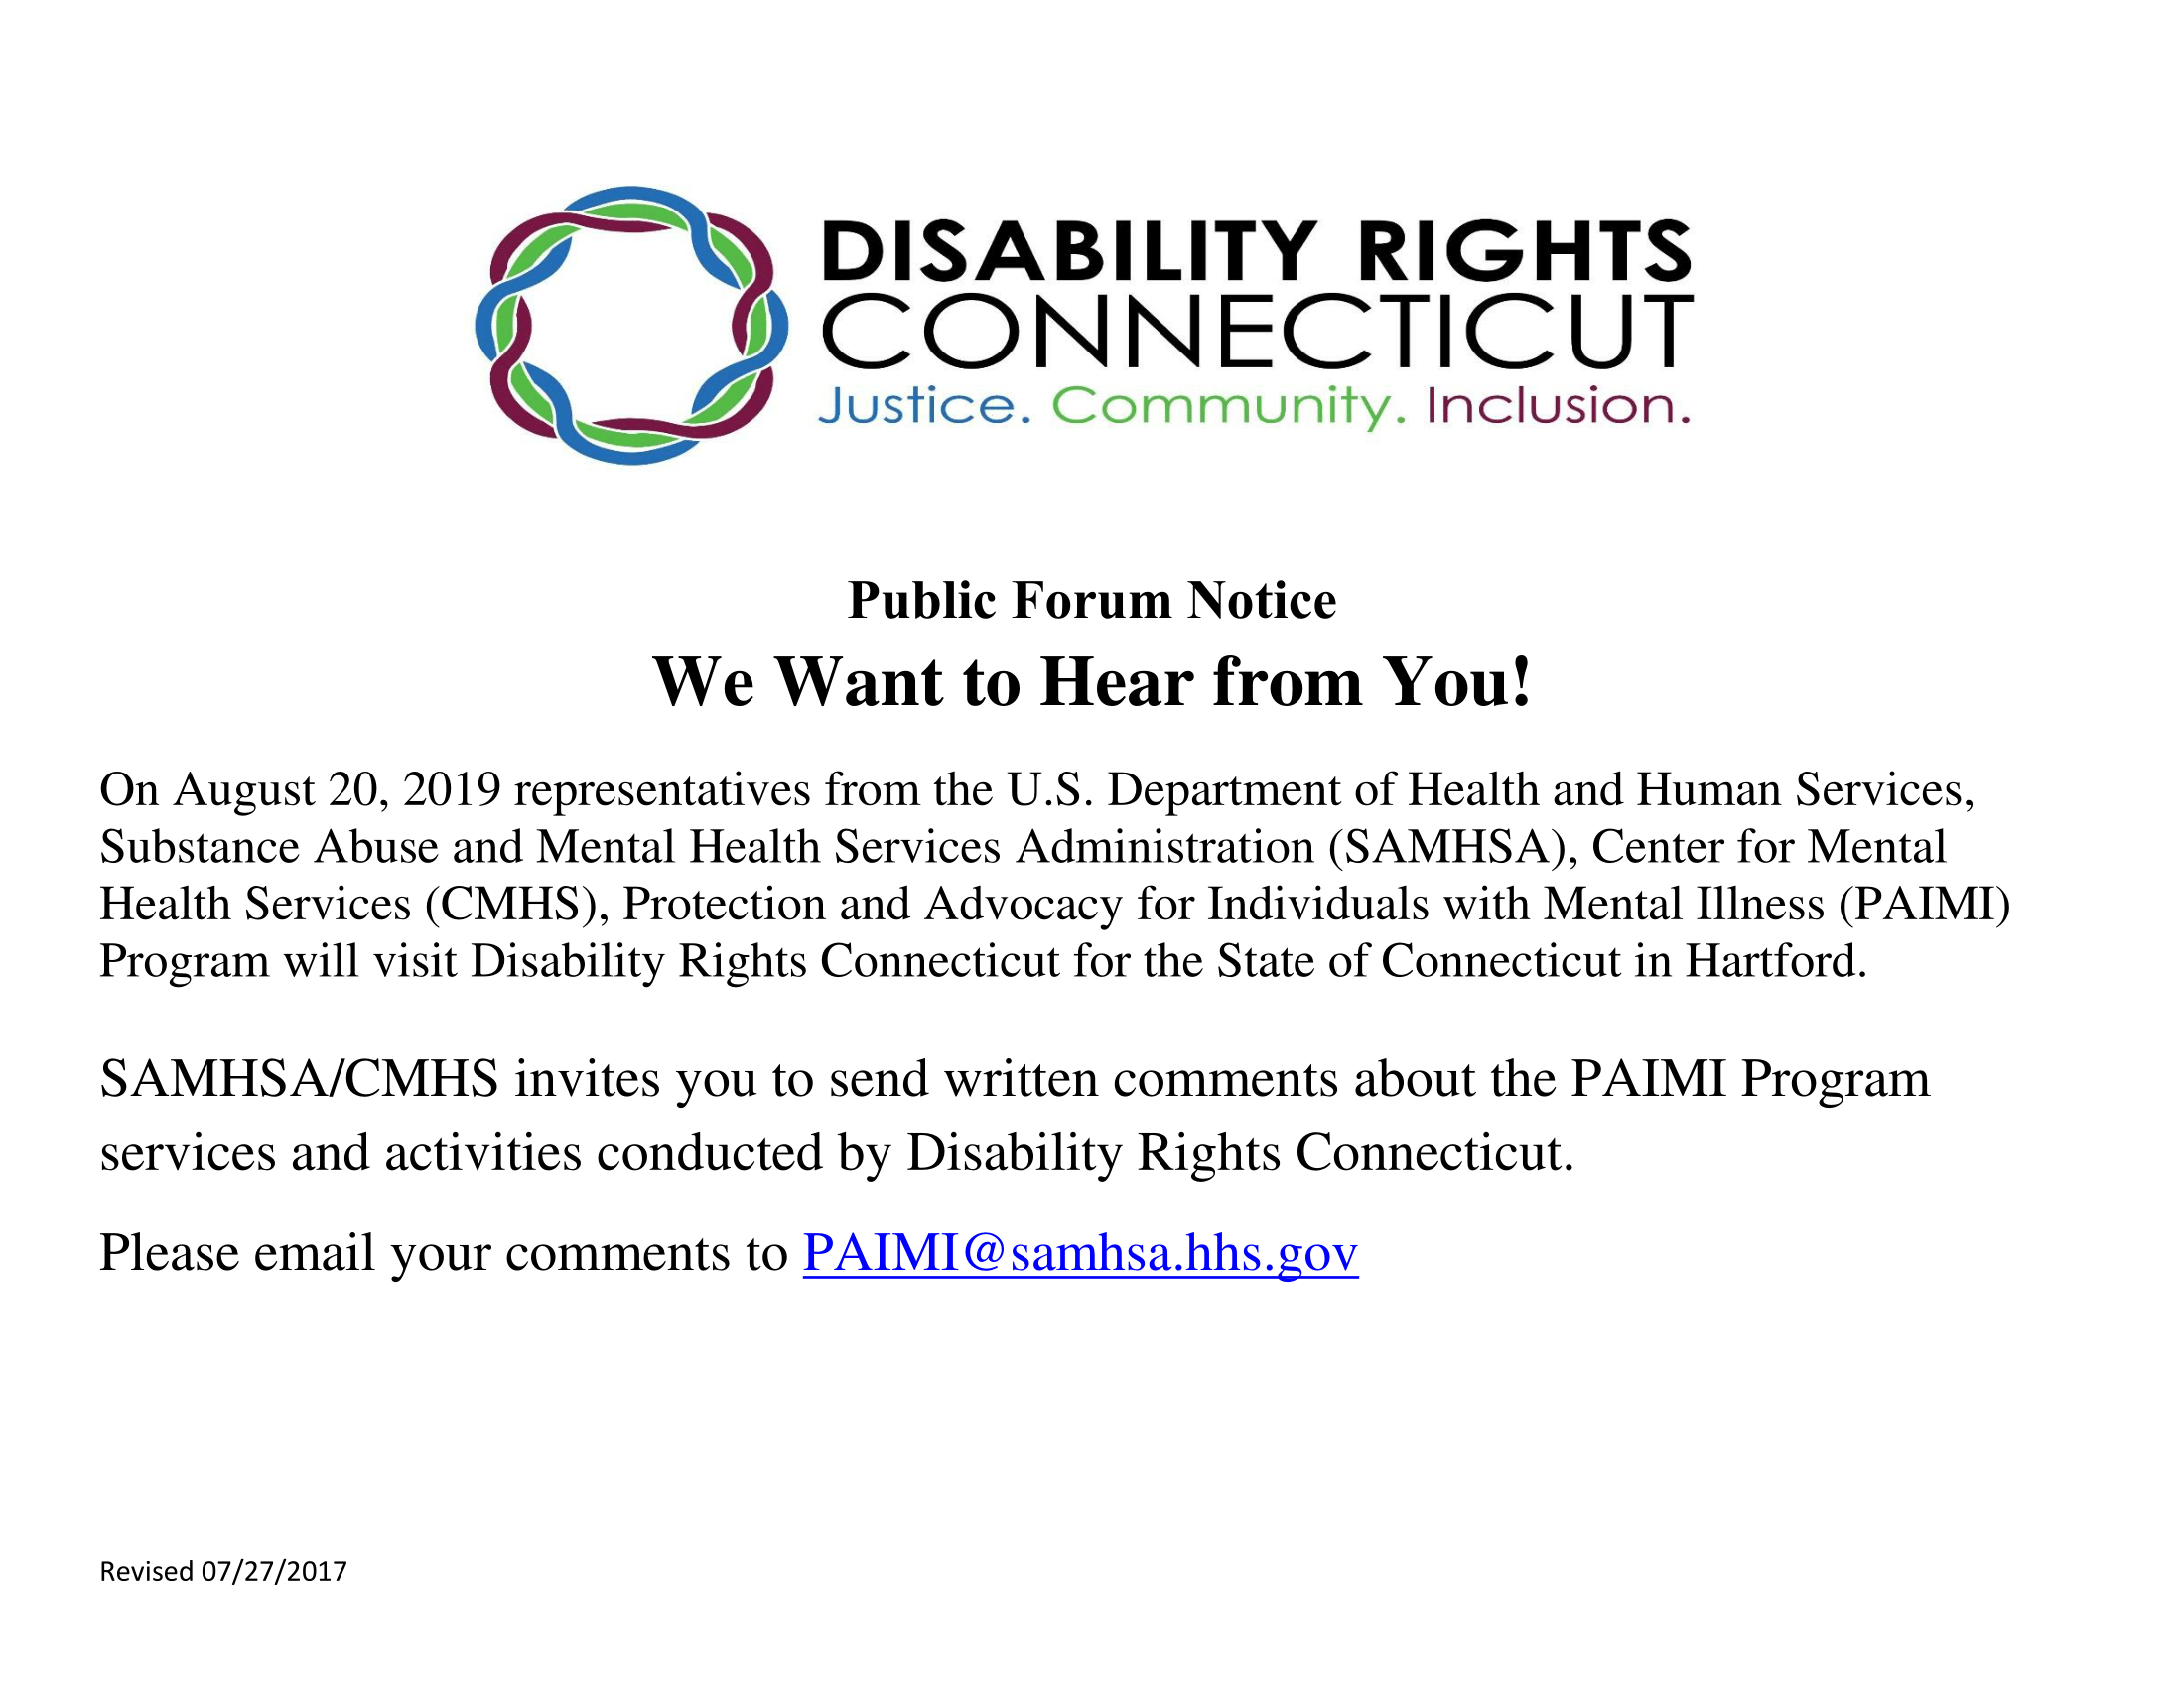 Public Forum Notice Flyer. SAMHSA/CMHS invites you to send written comments about the PAIMI program services and activities conducted by Disability Rights connecticut. please email your comments to paimi@samhsa.hhs.gov